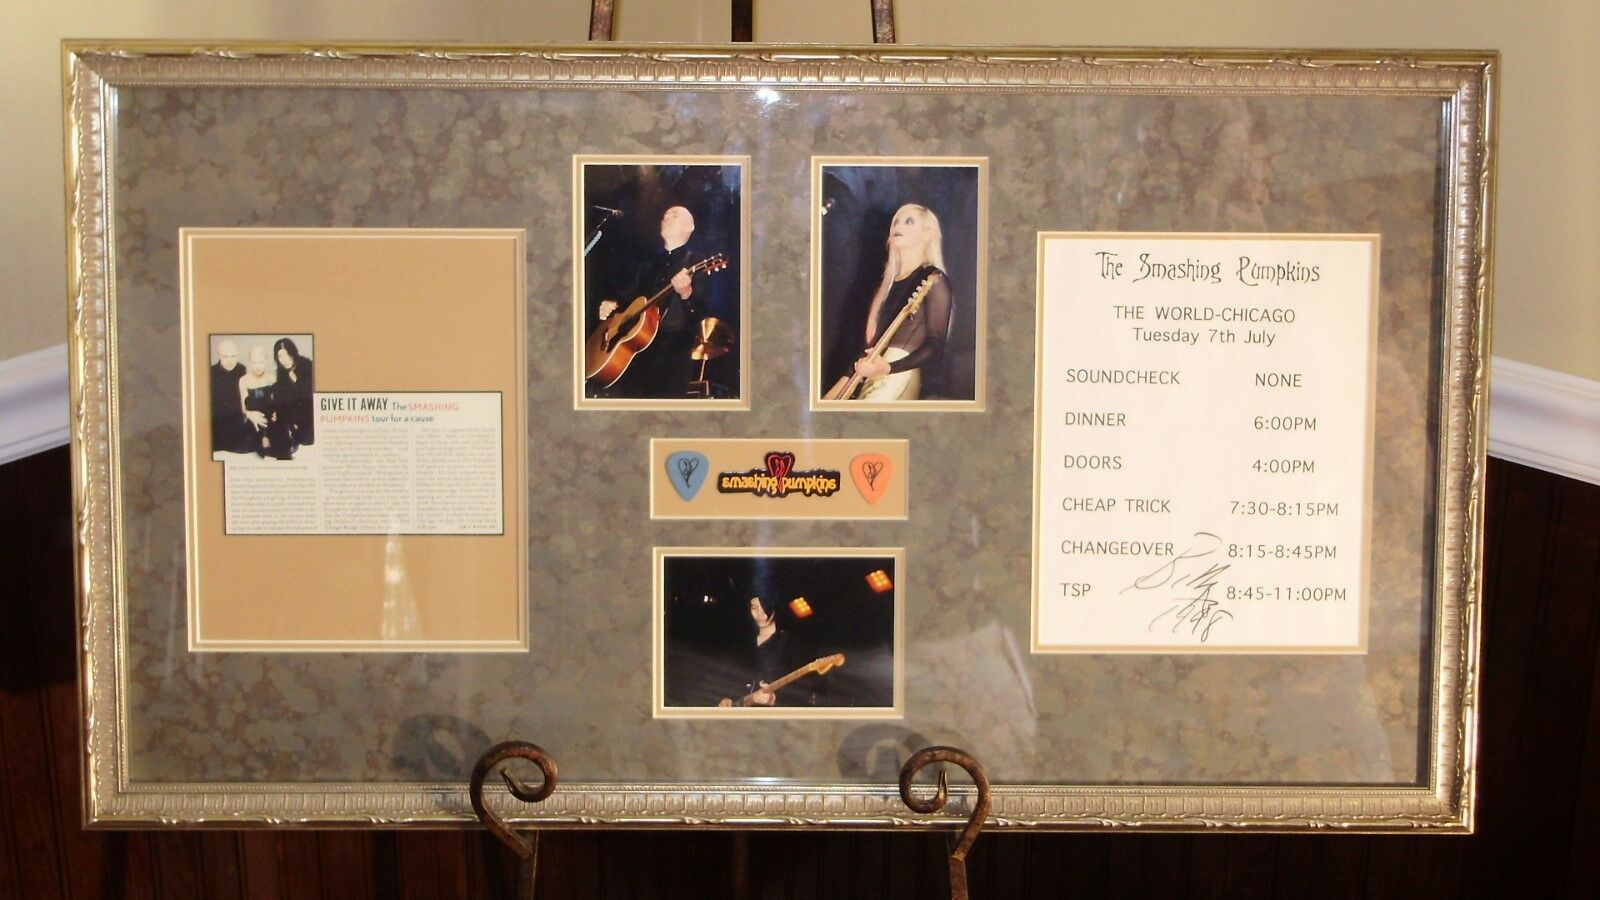 Smashing Pumpkins - Billy Corgan Autographed / Signed Tour Sheet w Guitar Picks!